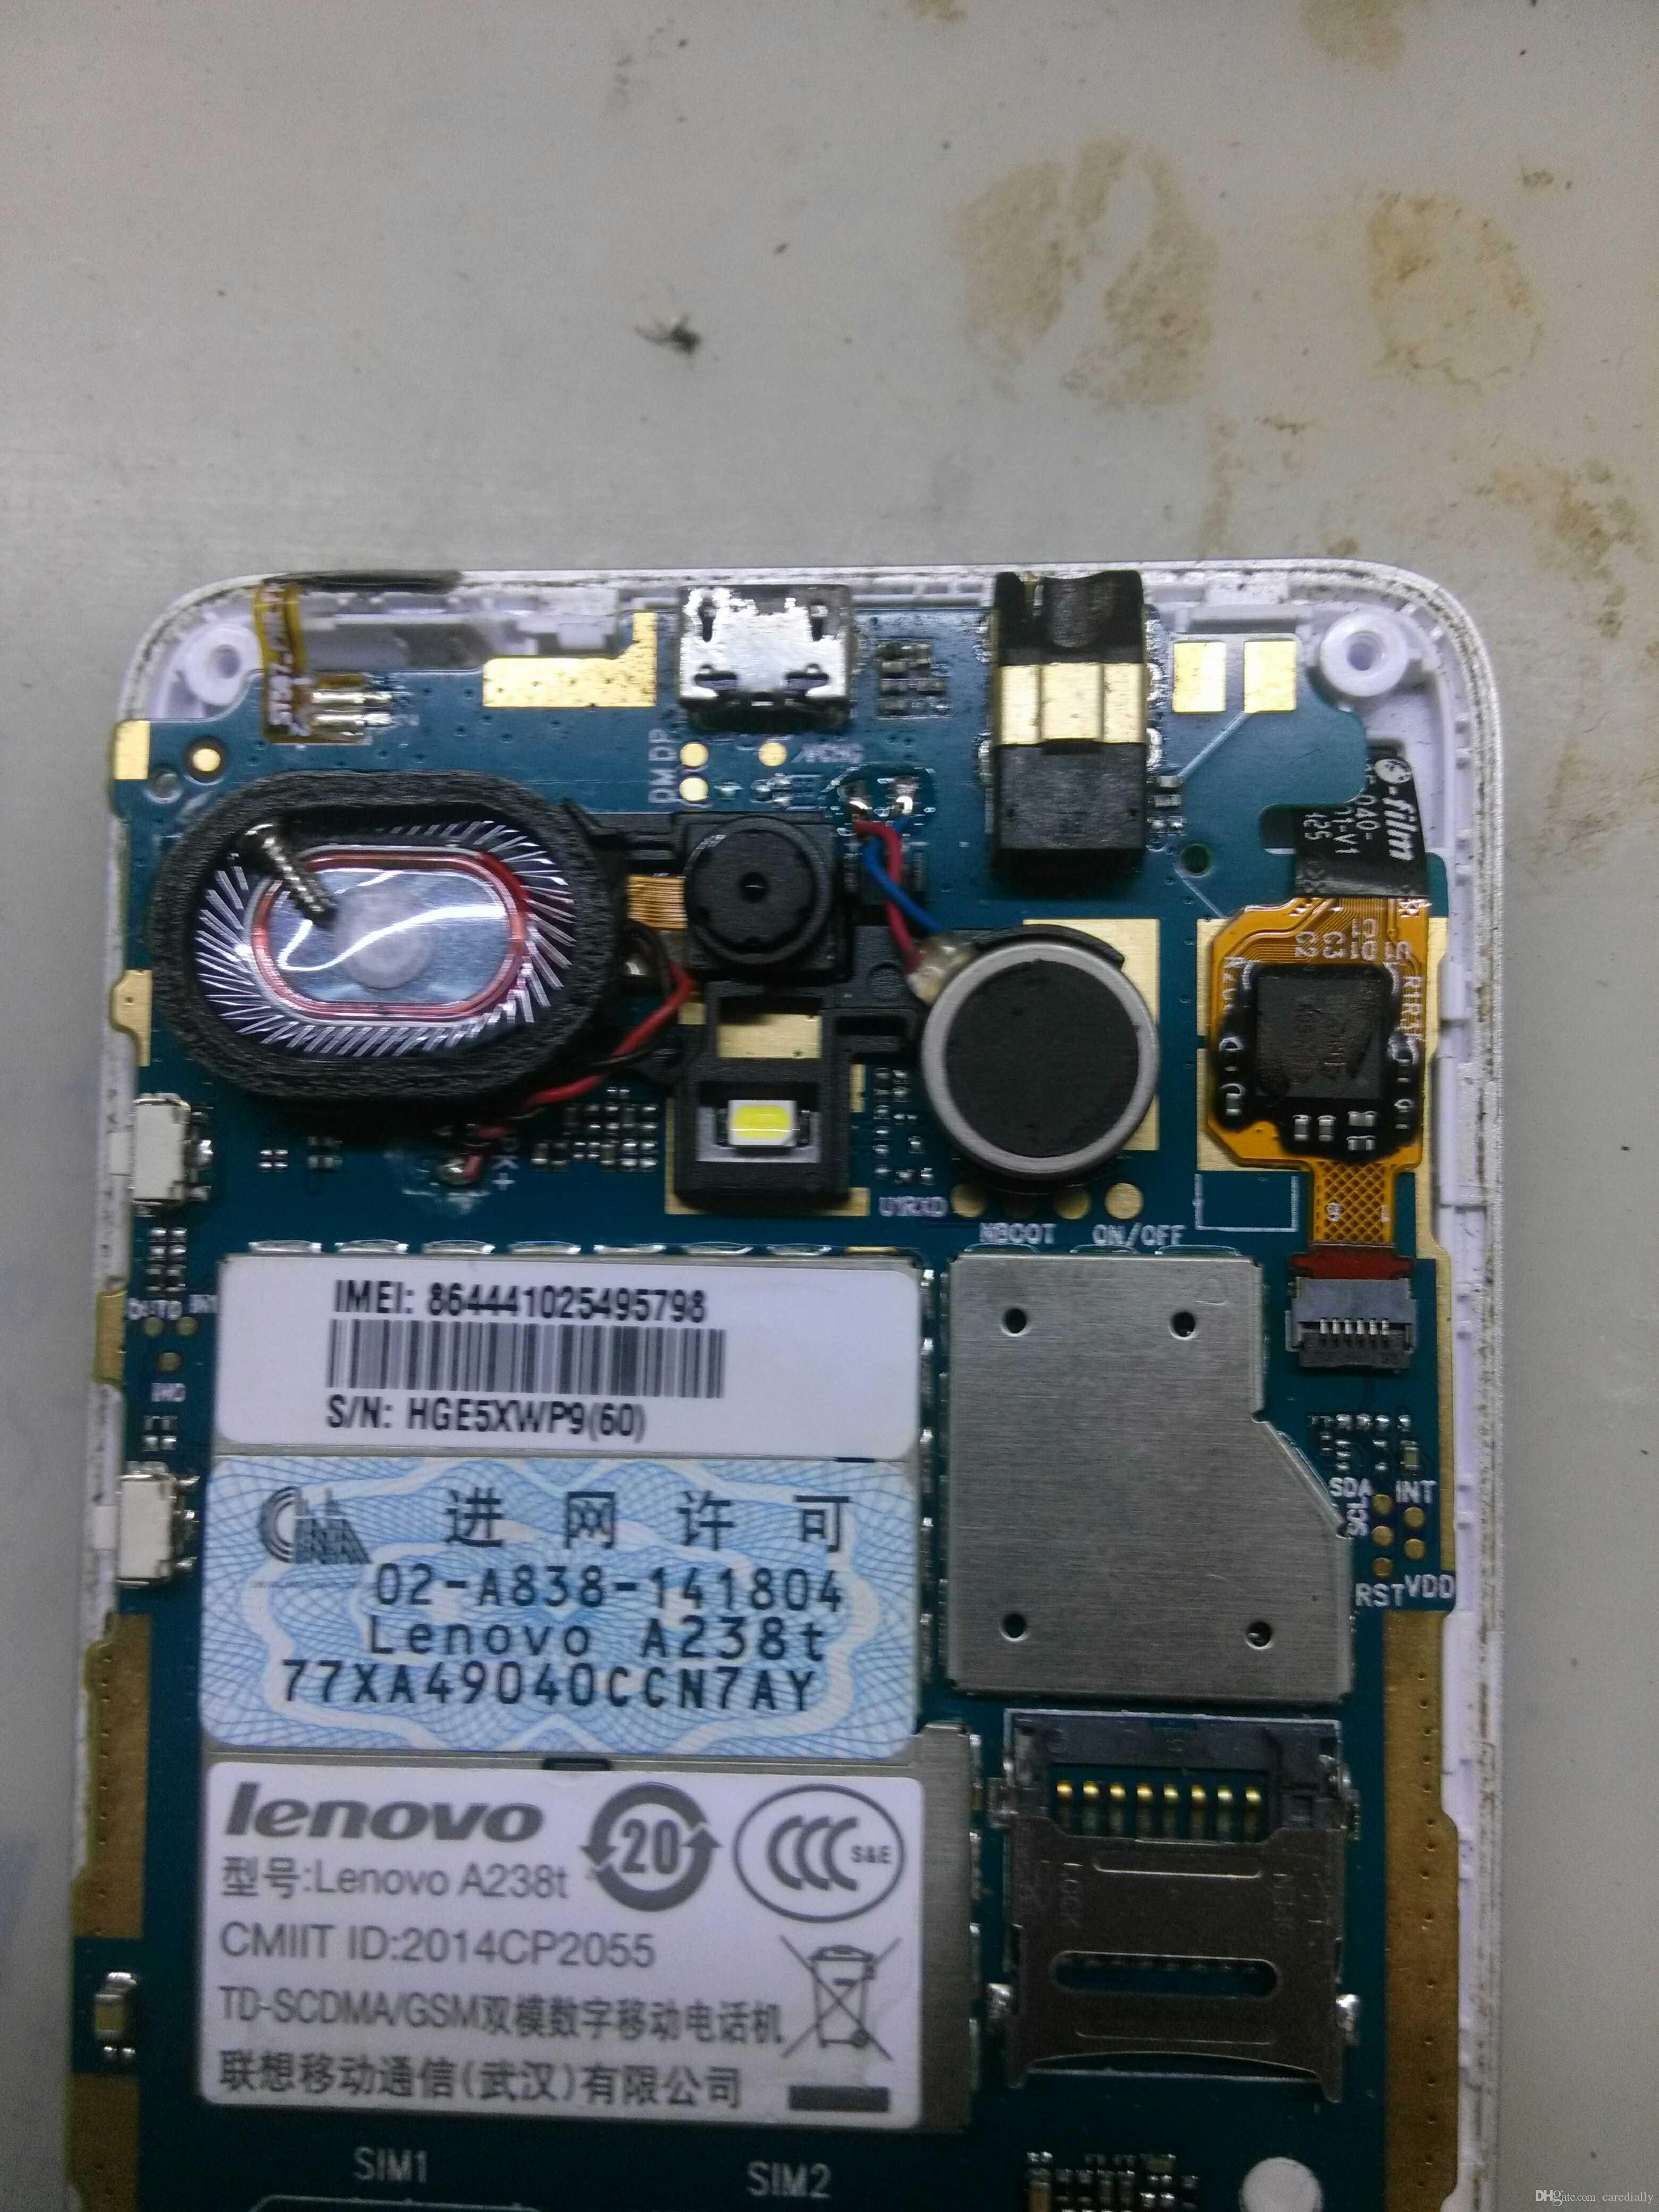 Unlocked used test work well for lenovo A238t motherboard mainboard board card fee chipsets